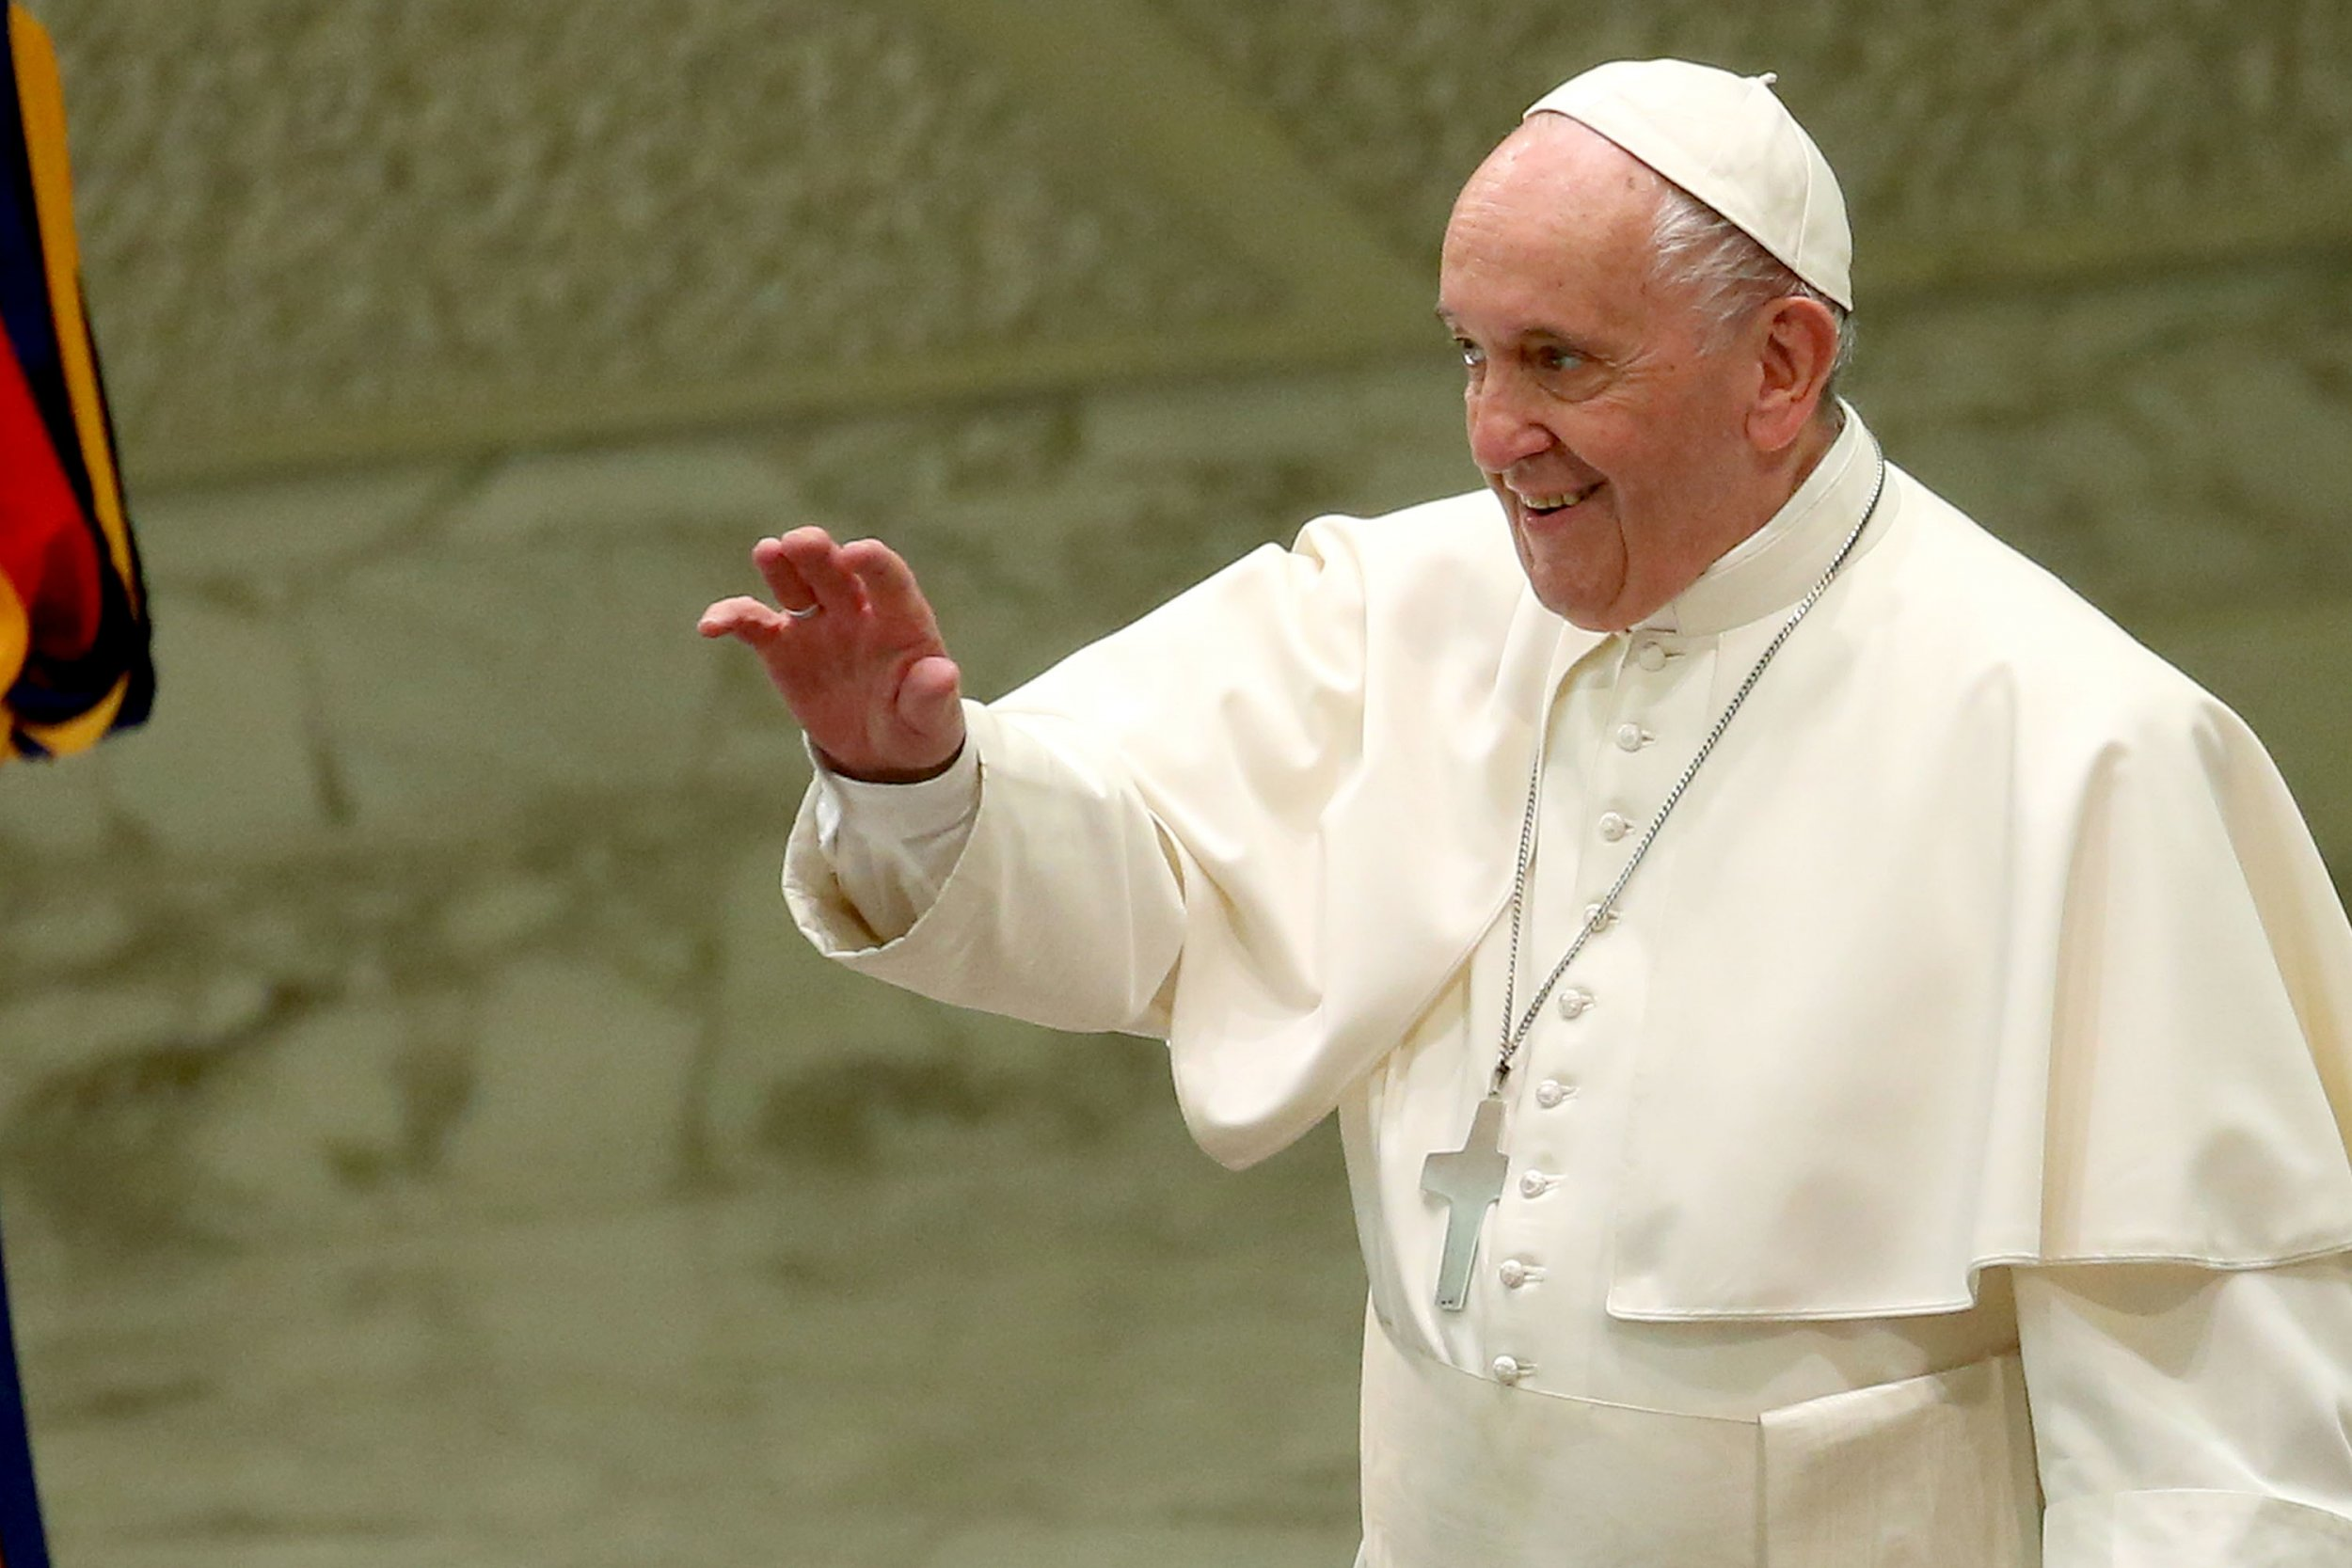 pope francis abortion support outlaw catholic church hitman